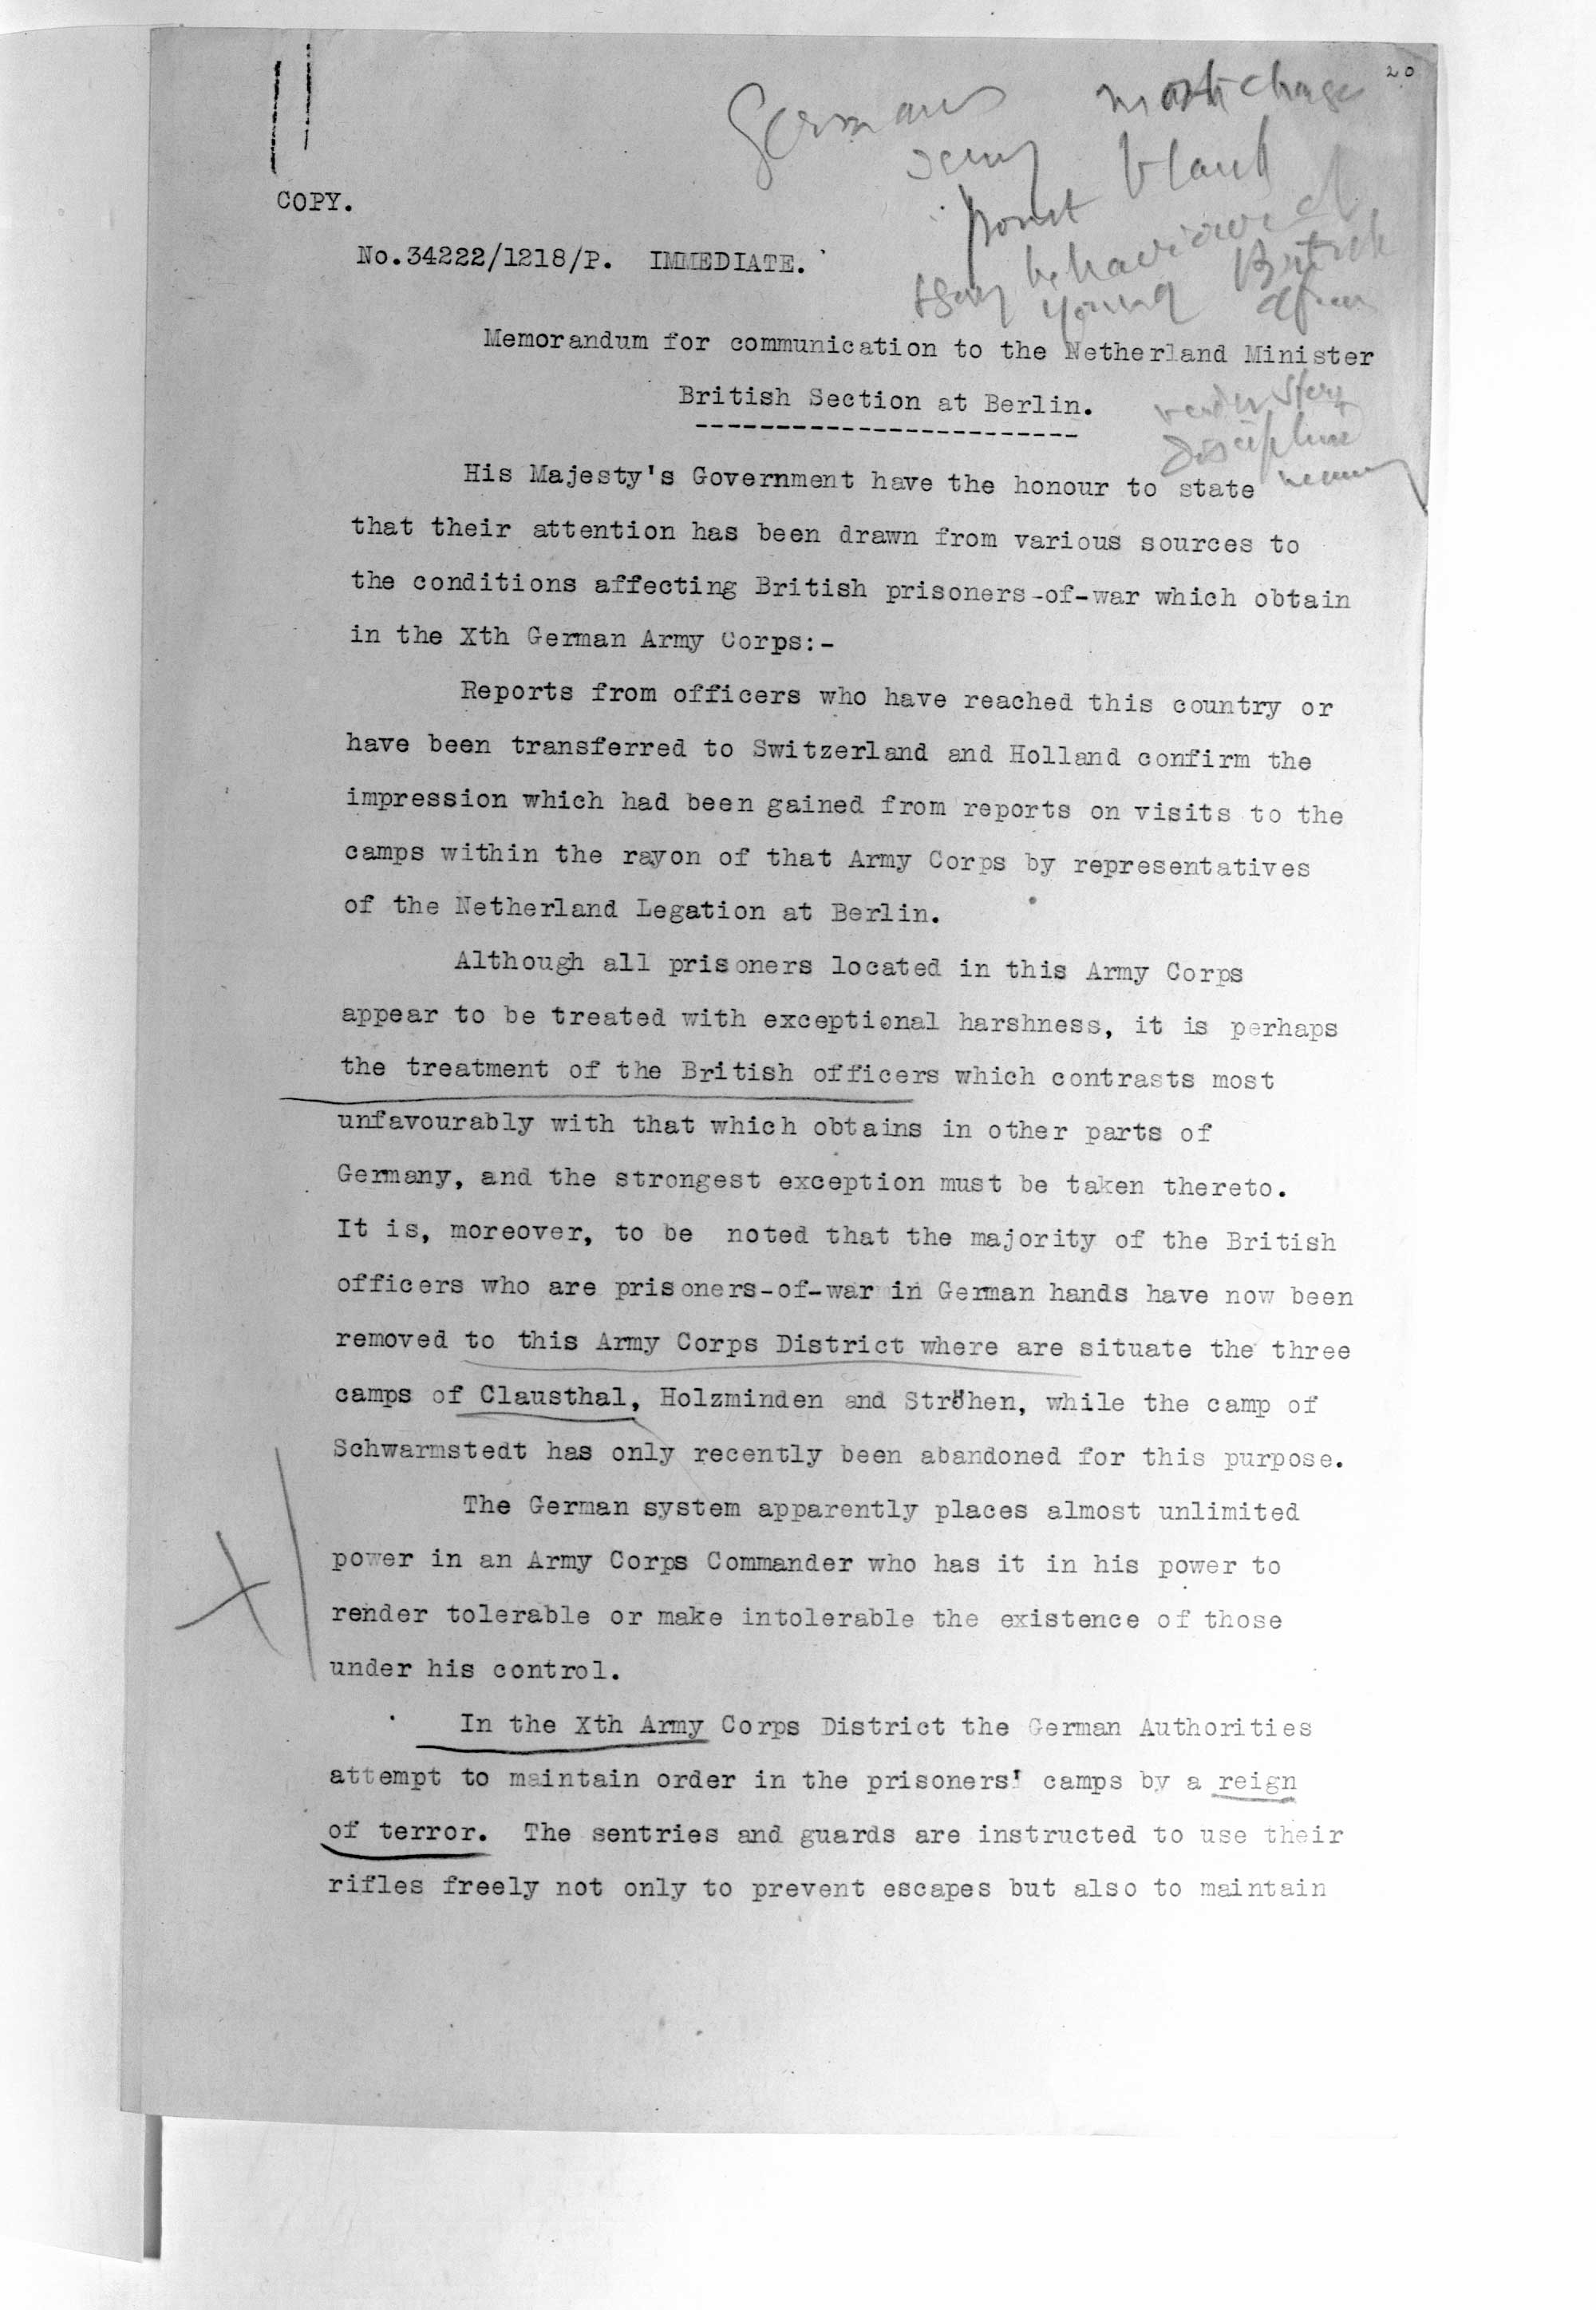 Memorandum for communication to the Netherlands Minister and a statement from the German authorities in reply. From the papers of George Cave, Home Secretary